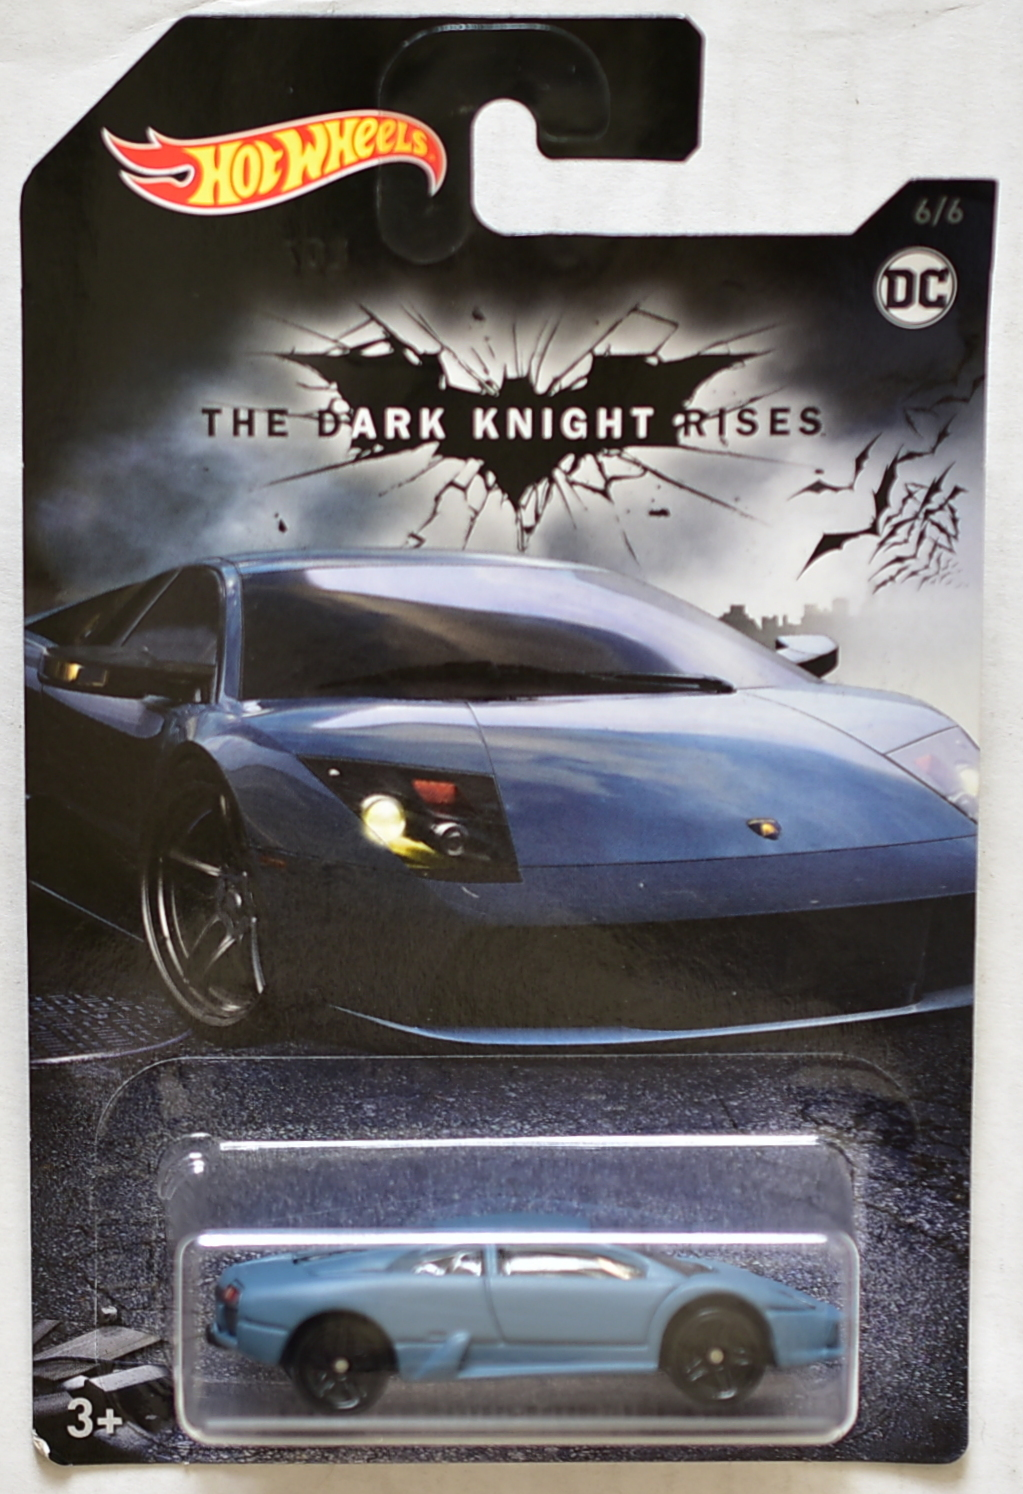 HOT WHEELS BATMAN 2018 THE DARK KNIGHT RISES LAMBORGHINI MURCIELAGO